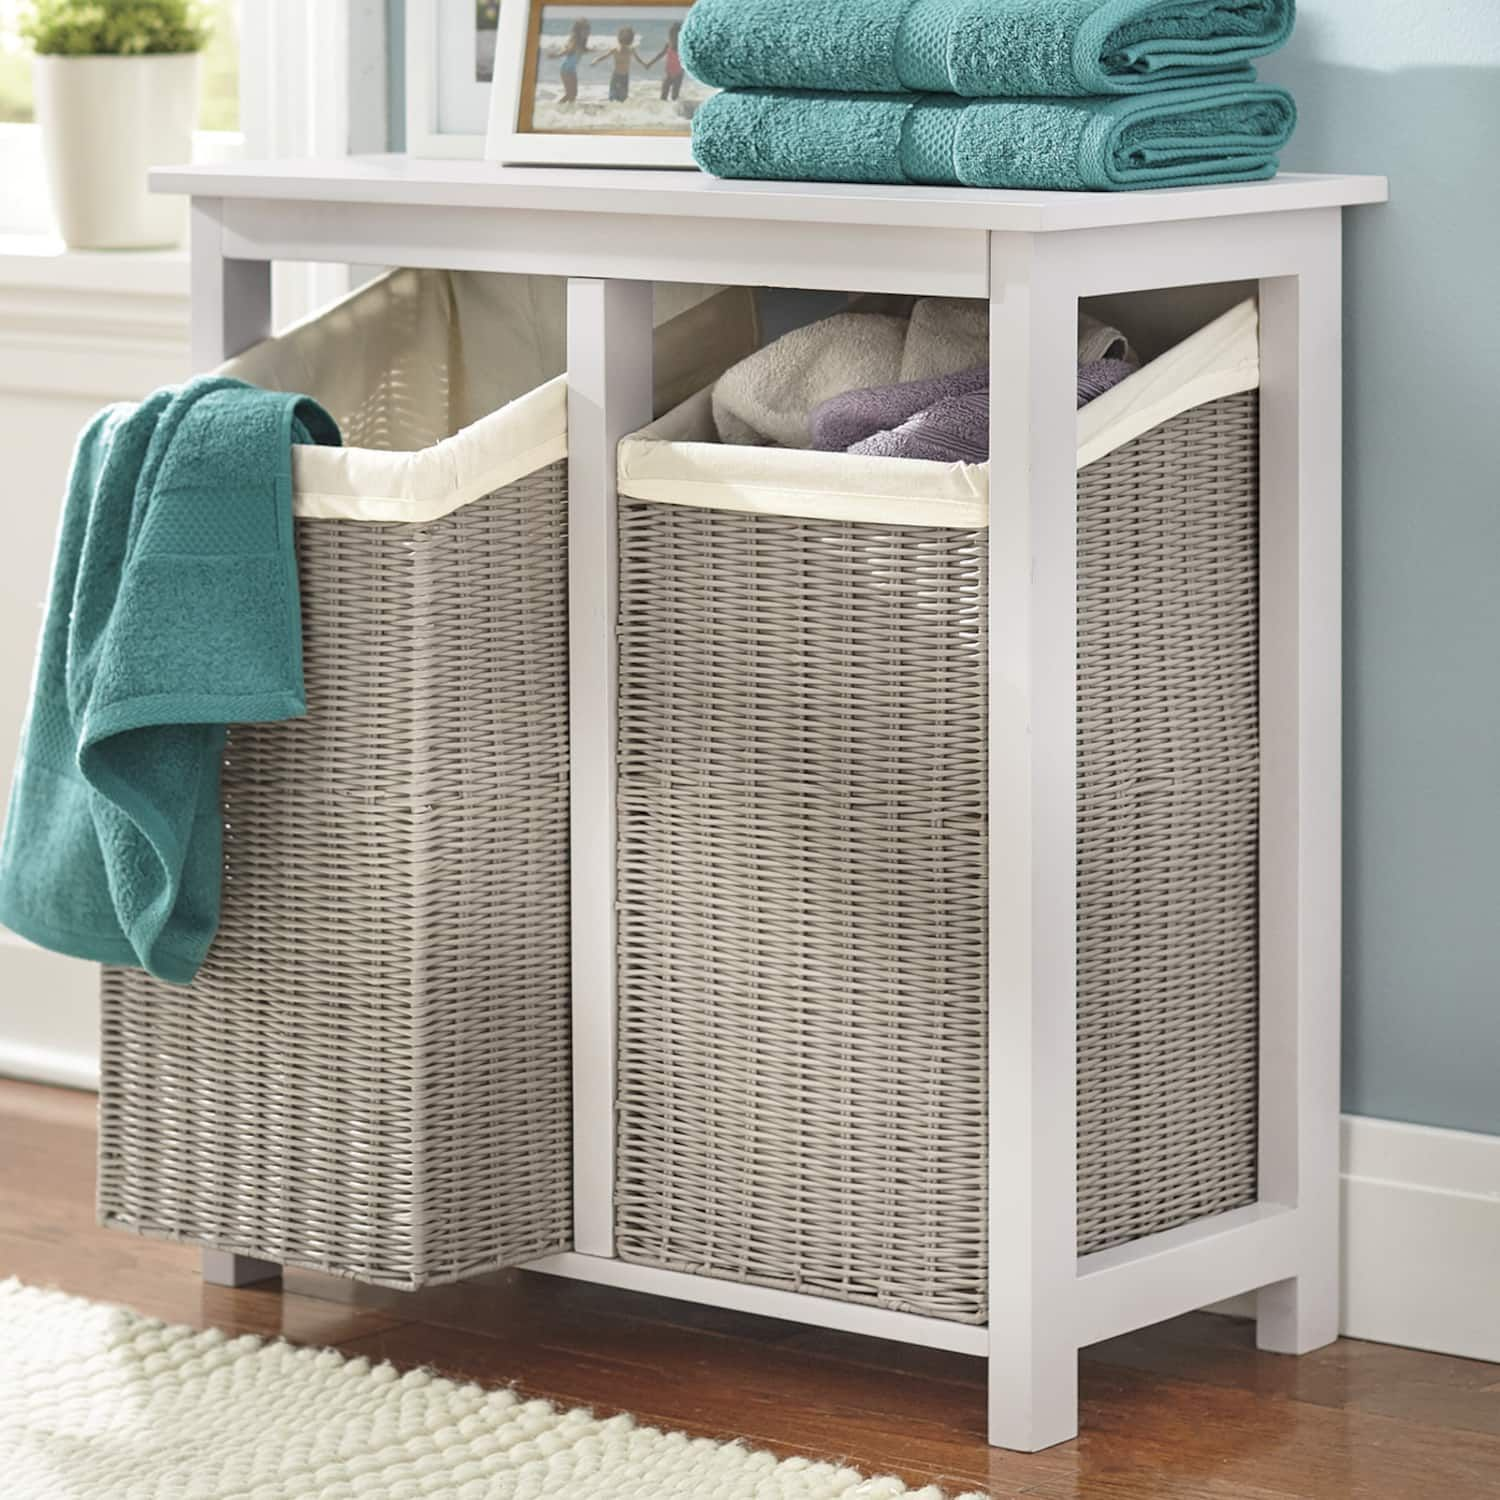 Double Hamper Laundry Room Storage Shelves Laundry Hamper